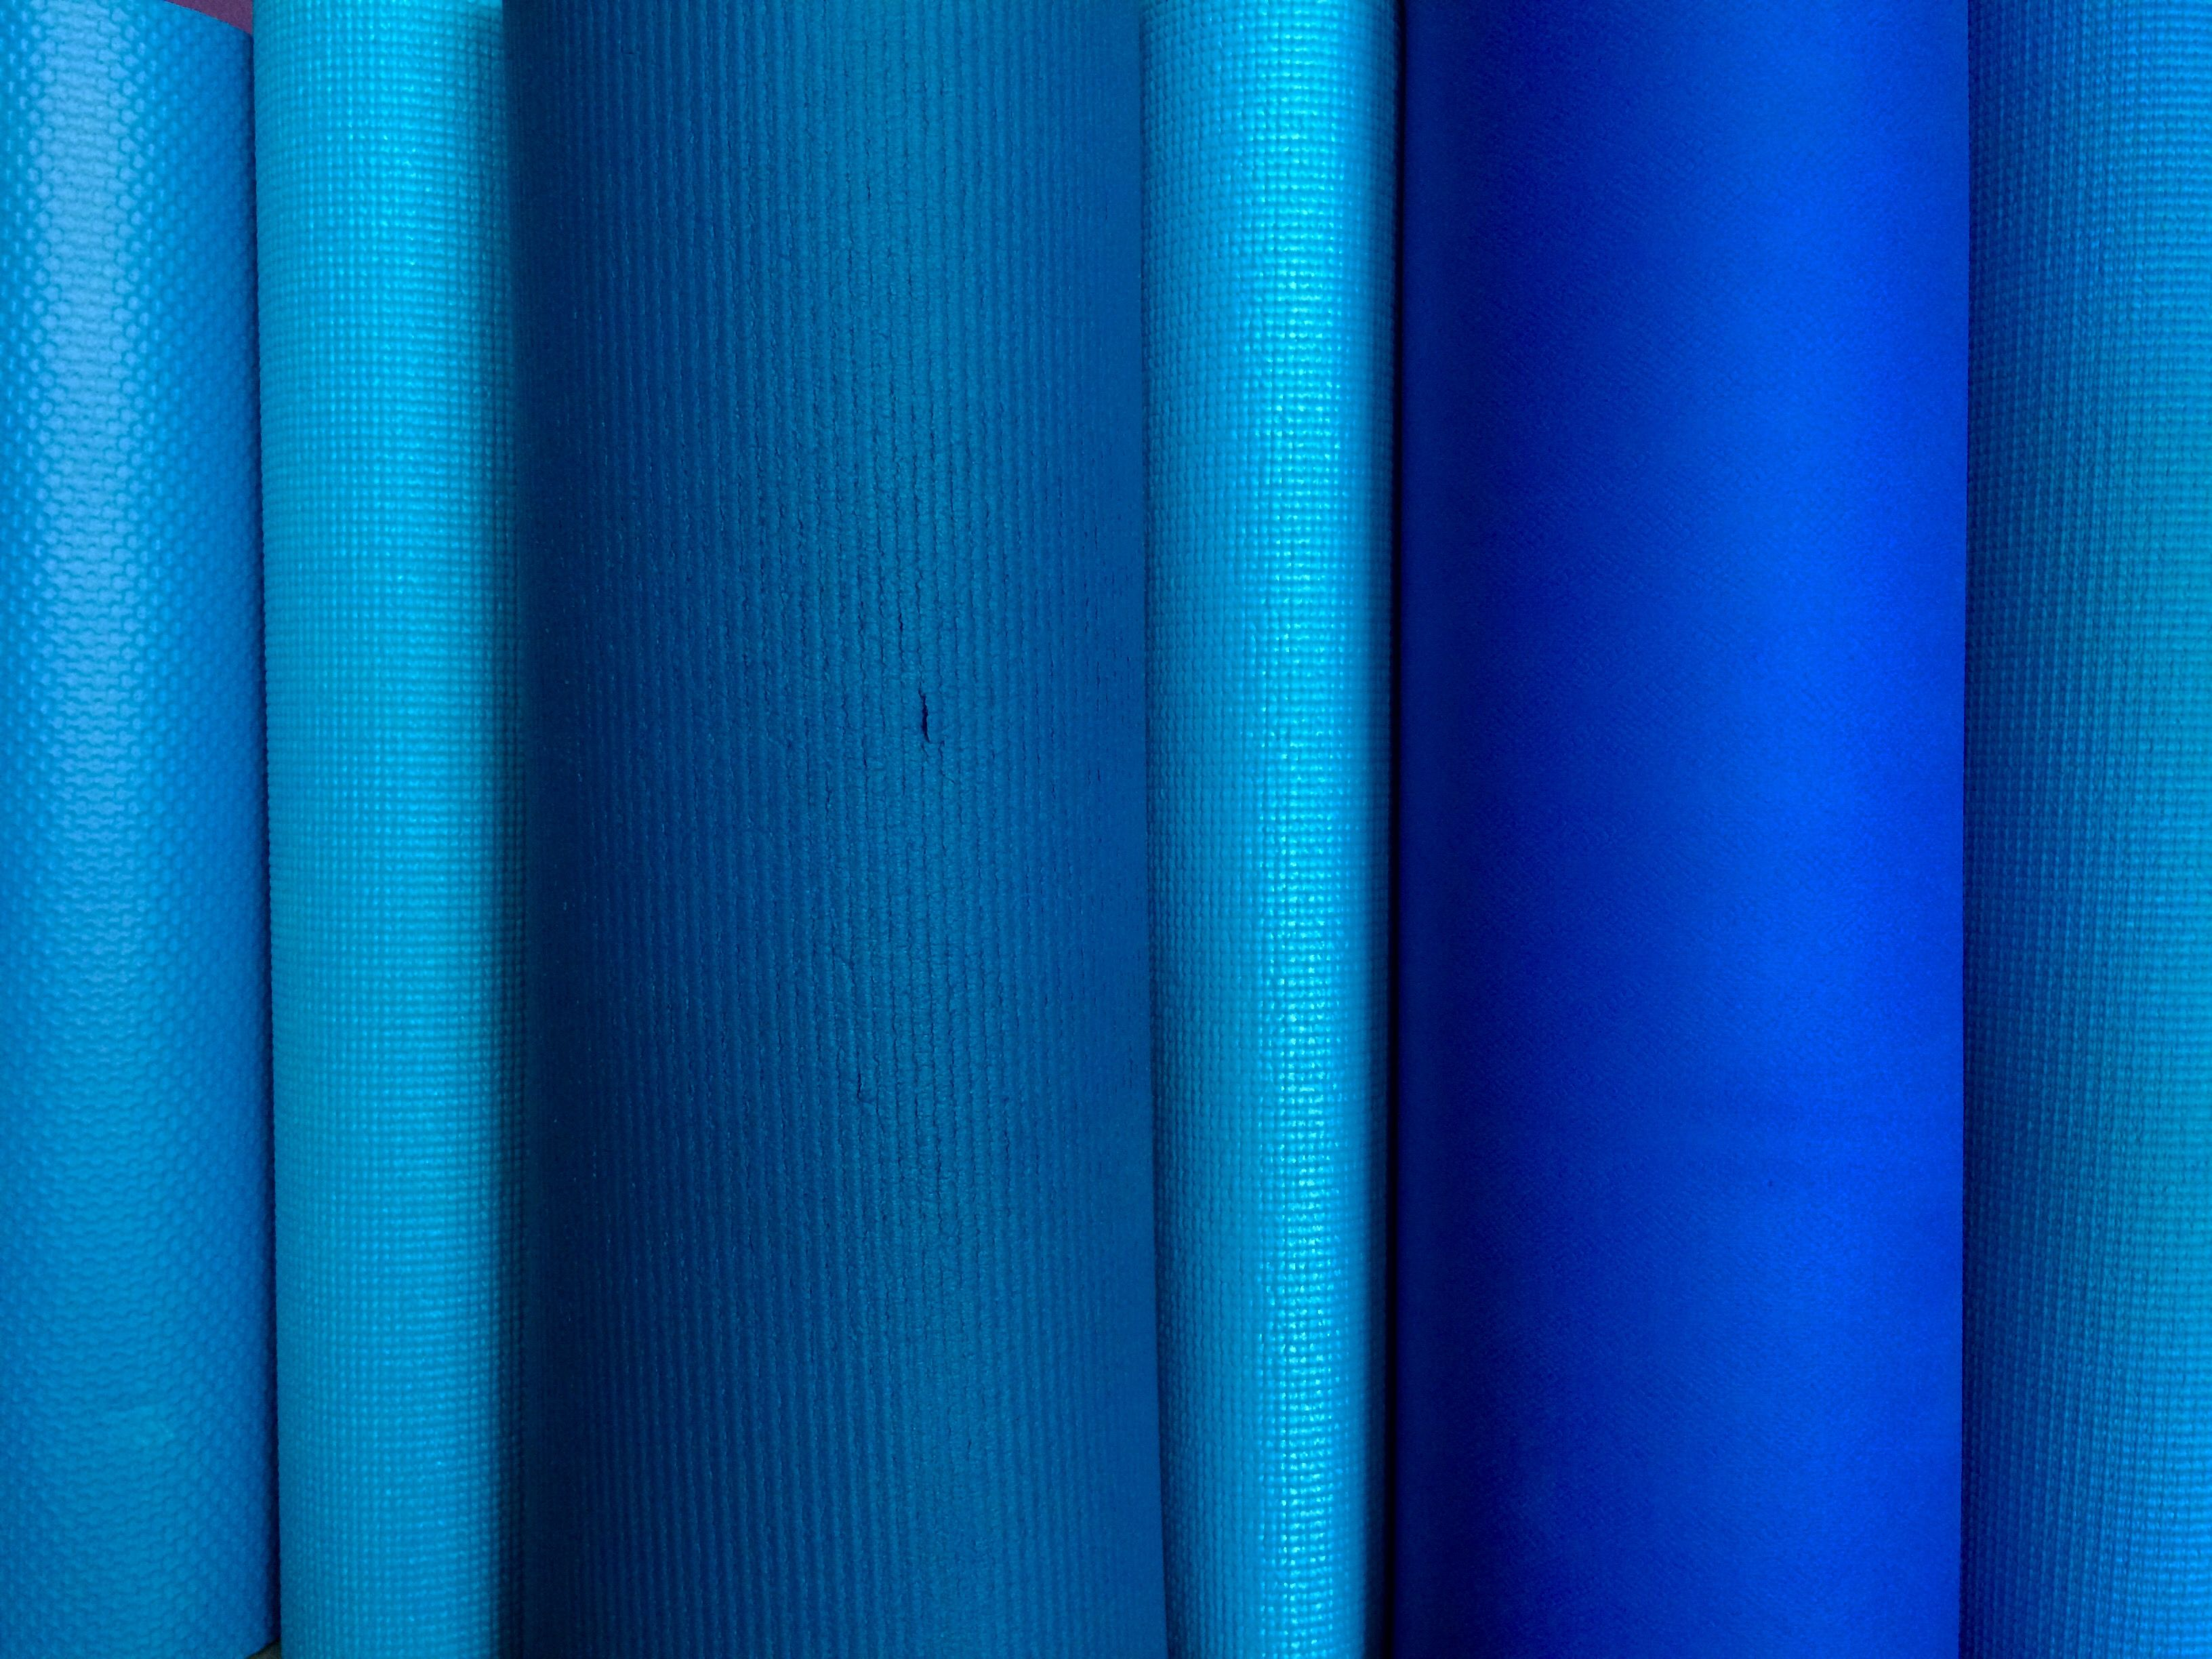 How To Use Shades Of Blue In Design